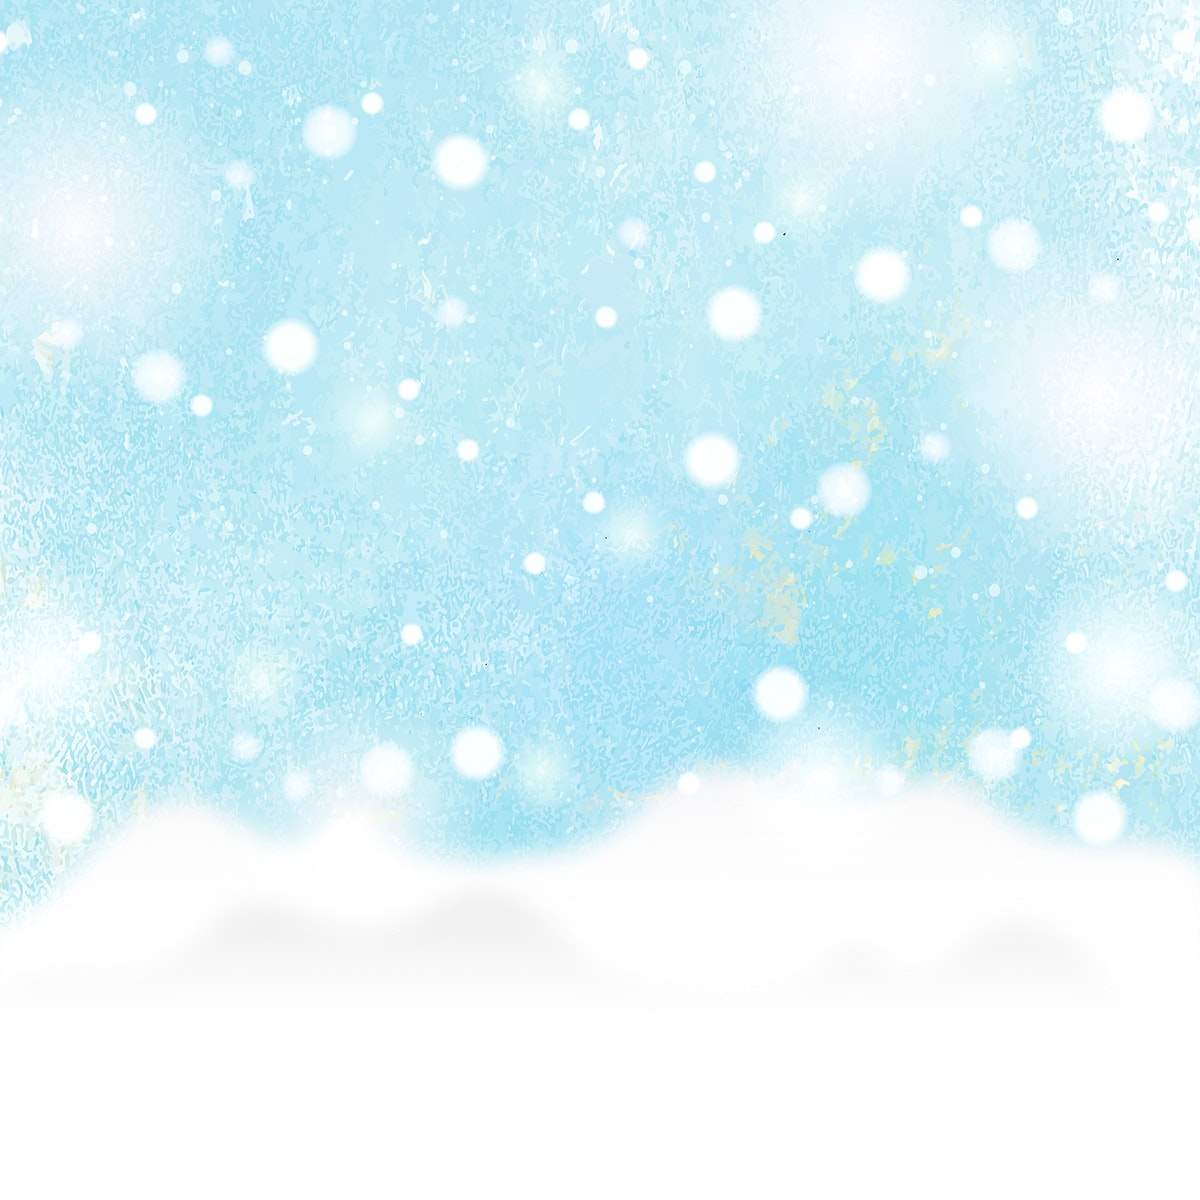 Watercolor painting of a snow scene vector